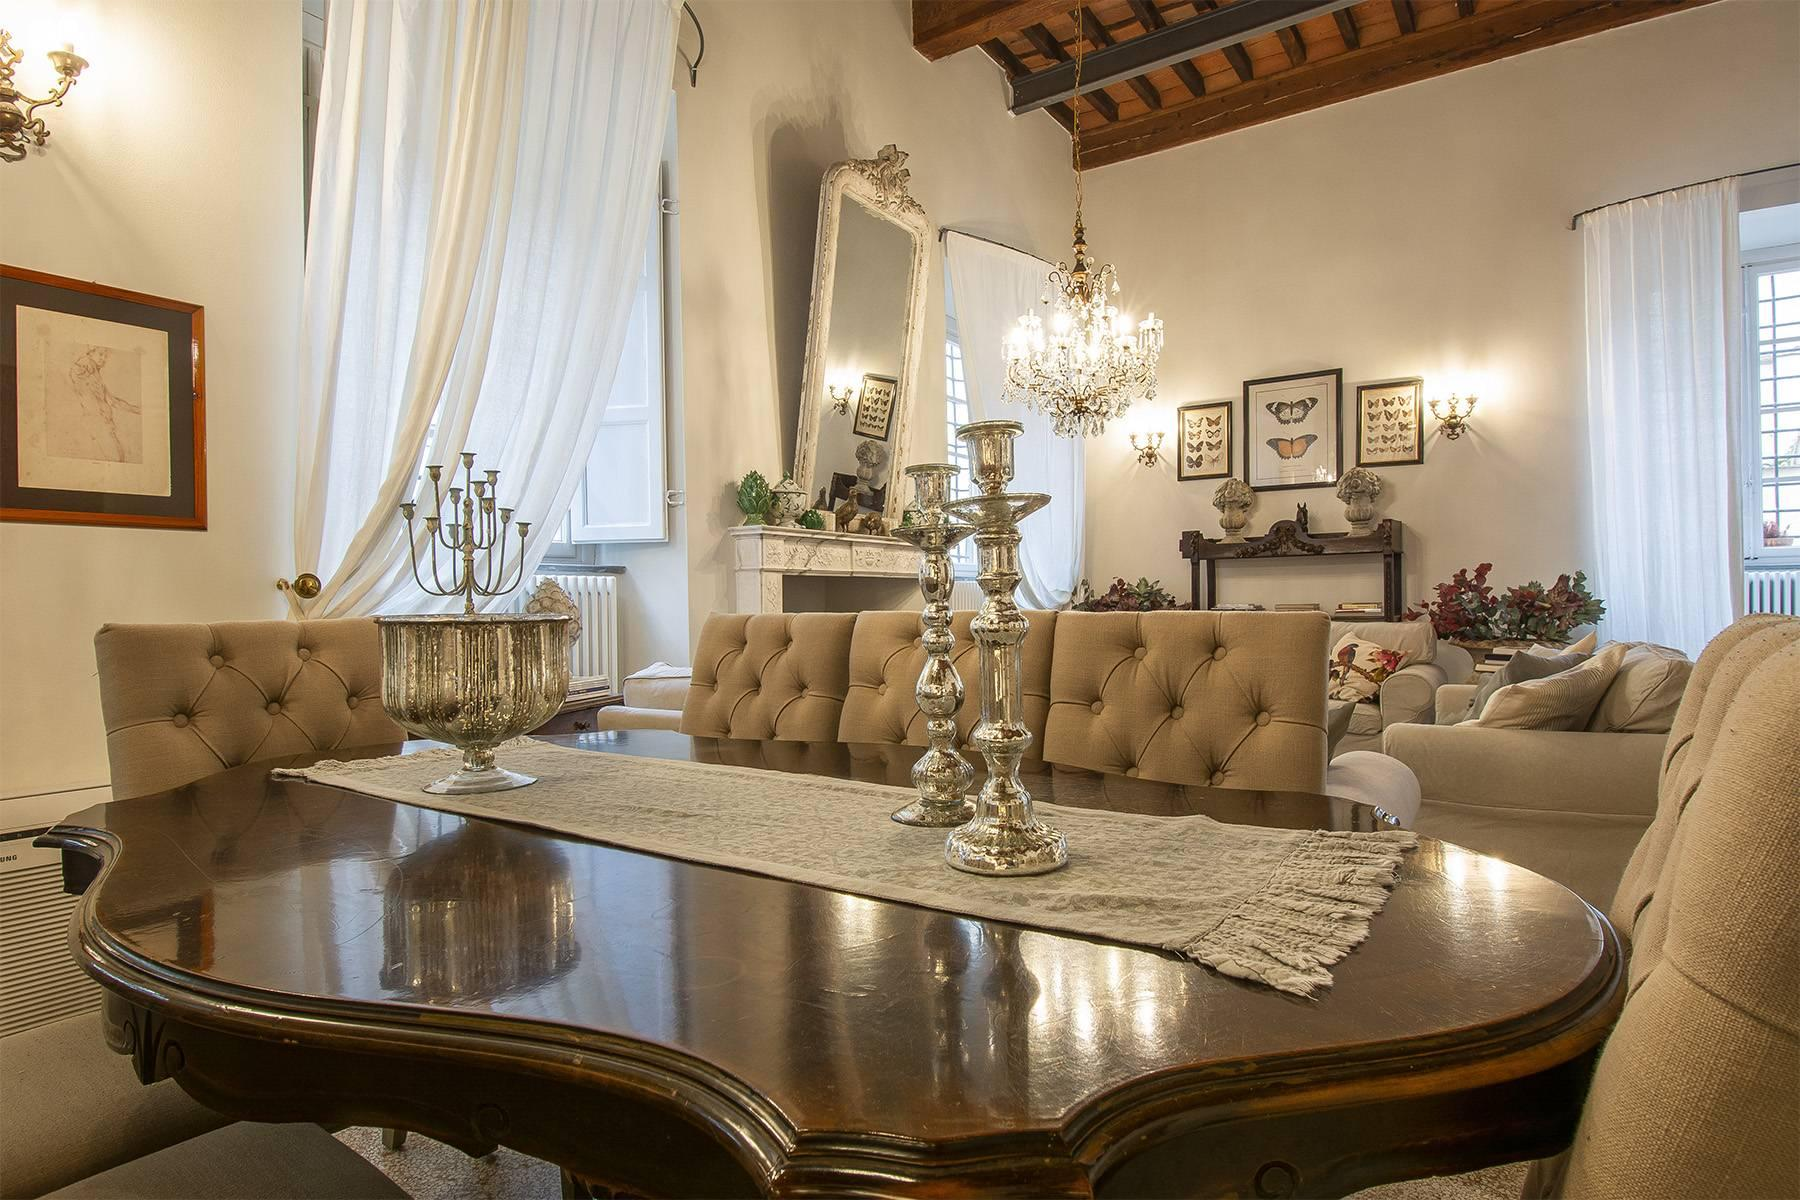 Exclusive apartment in the heart of Lucca - 15